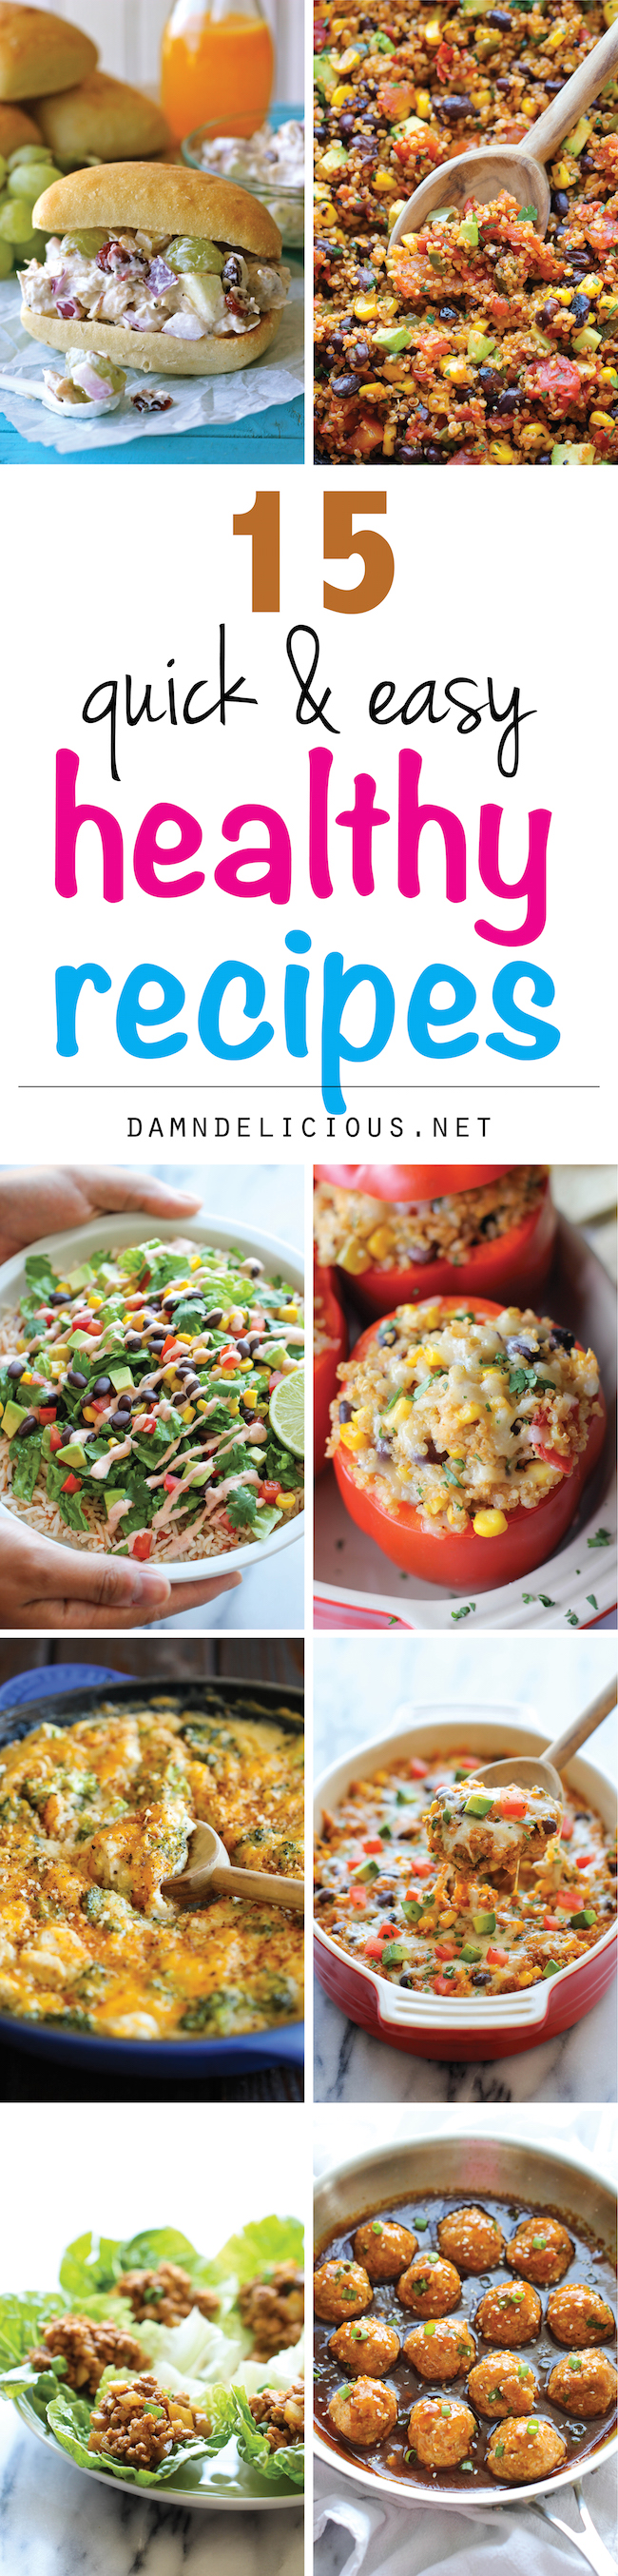 15 quick and easy healthy recipes damn delicious 15 quick and easy healthy recipes the best and easiest healthy comforting recipes that forumfinder Image collections